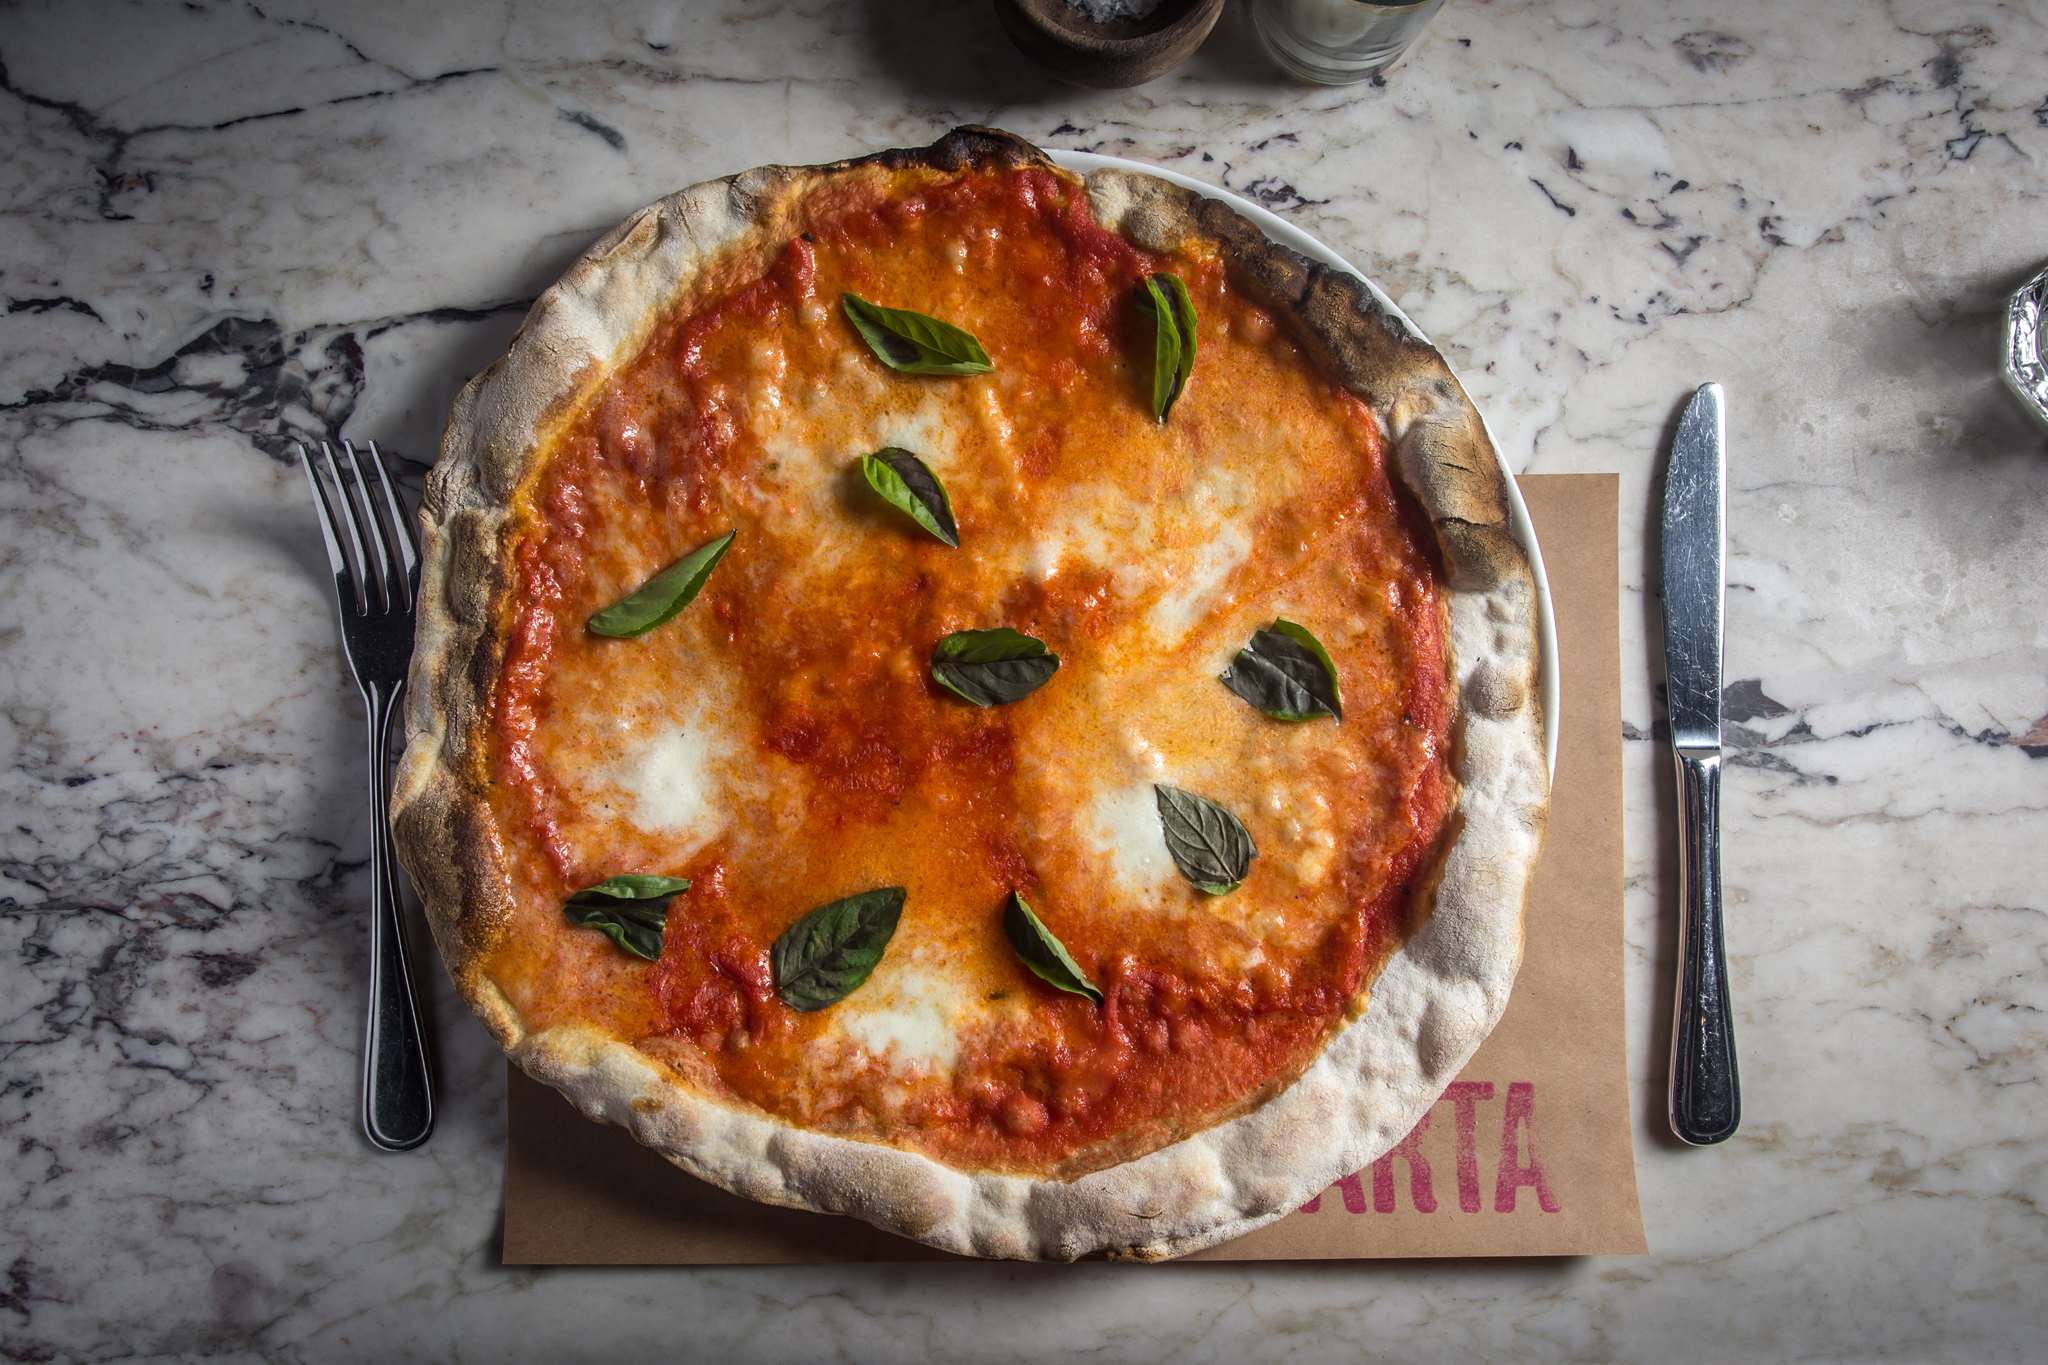 The 25 best New York pizzas